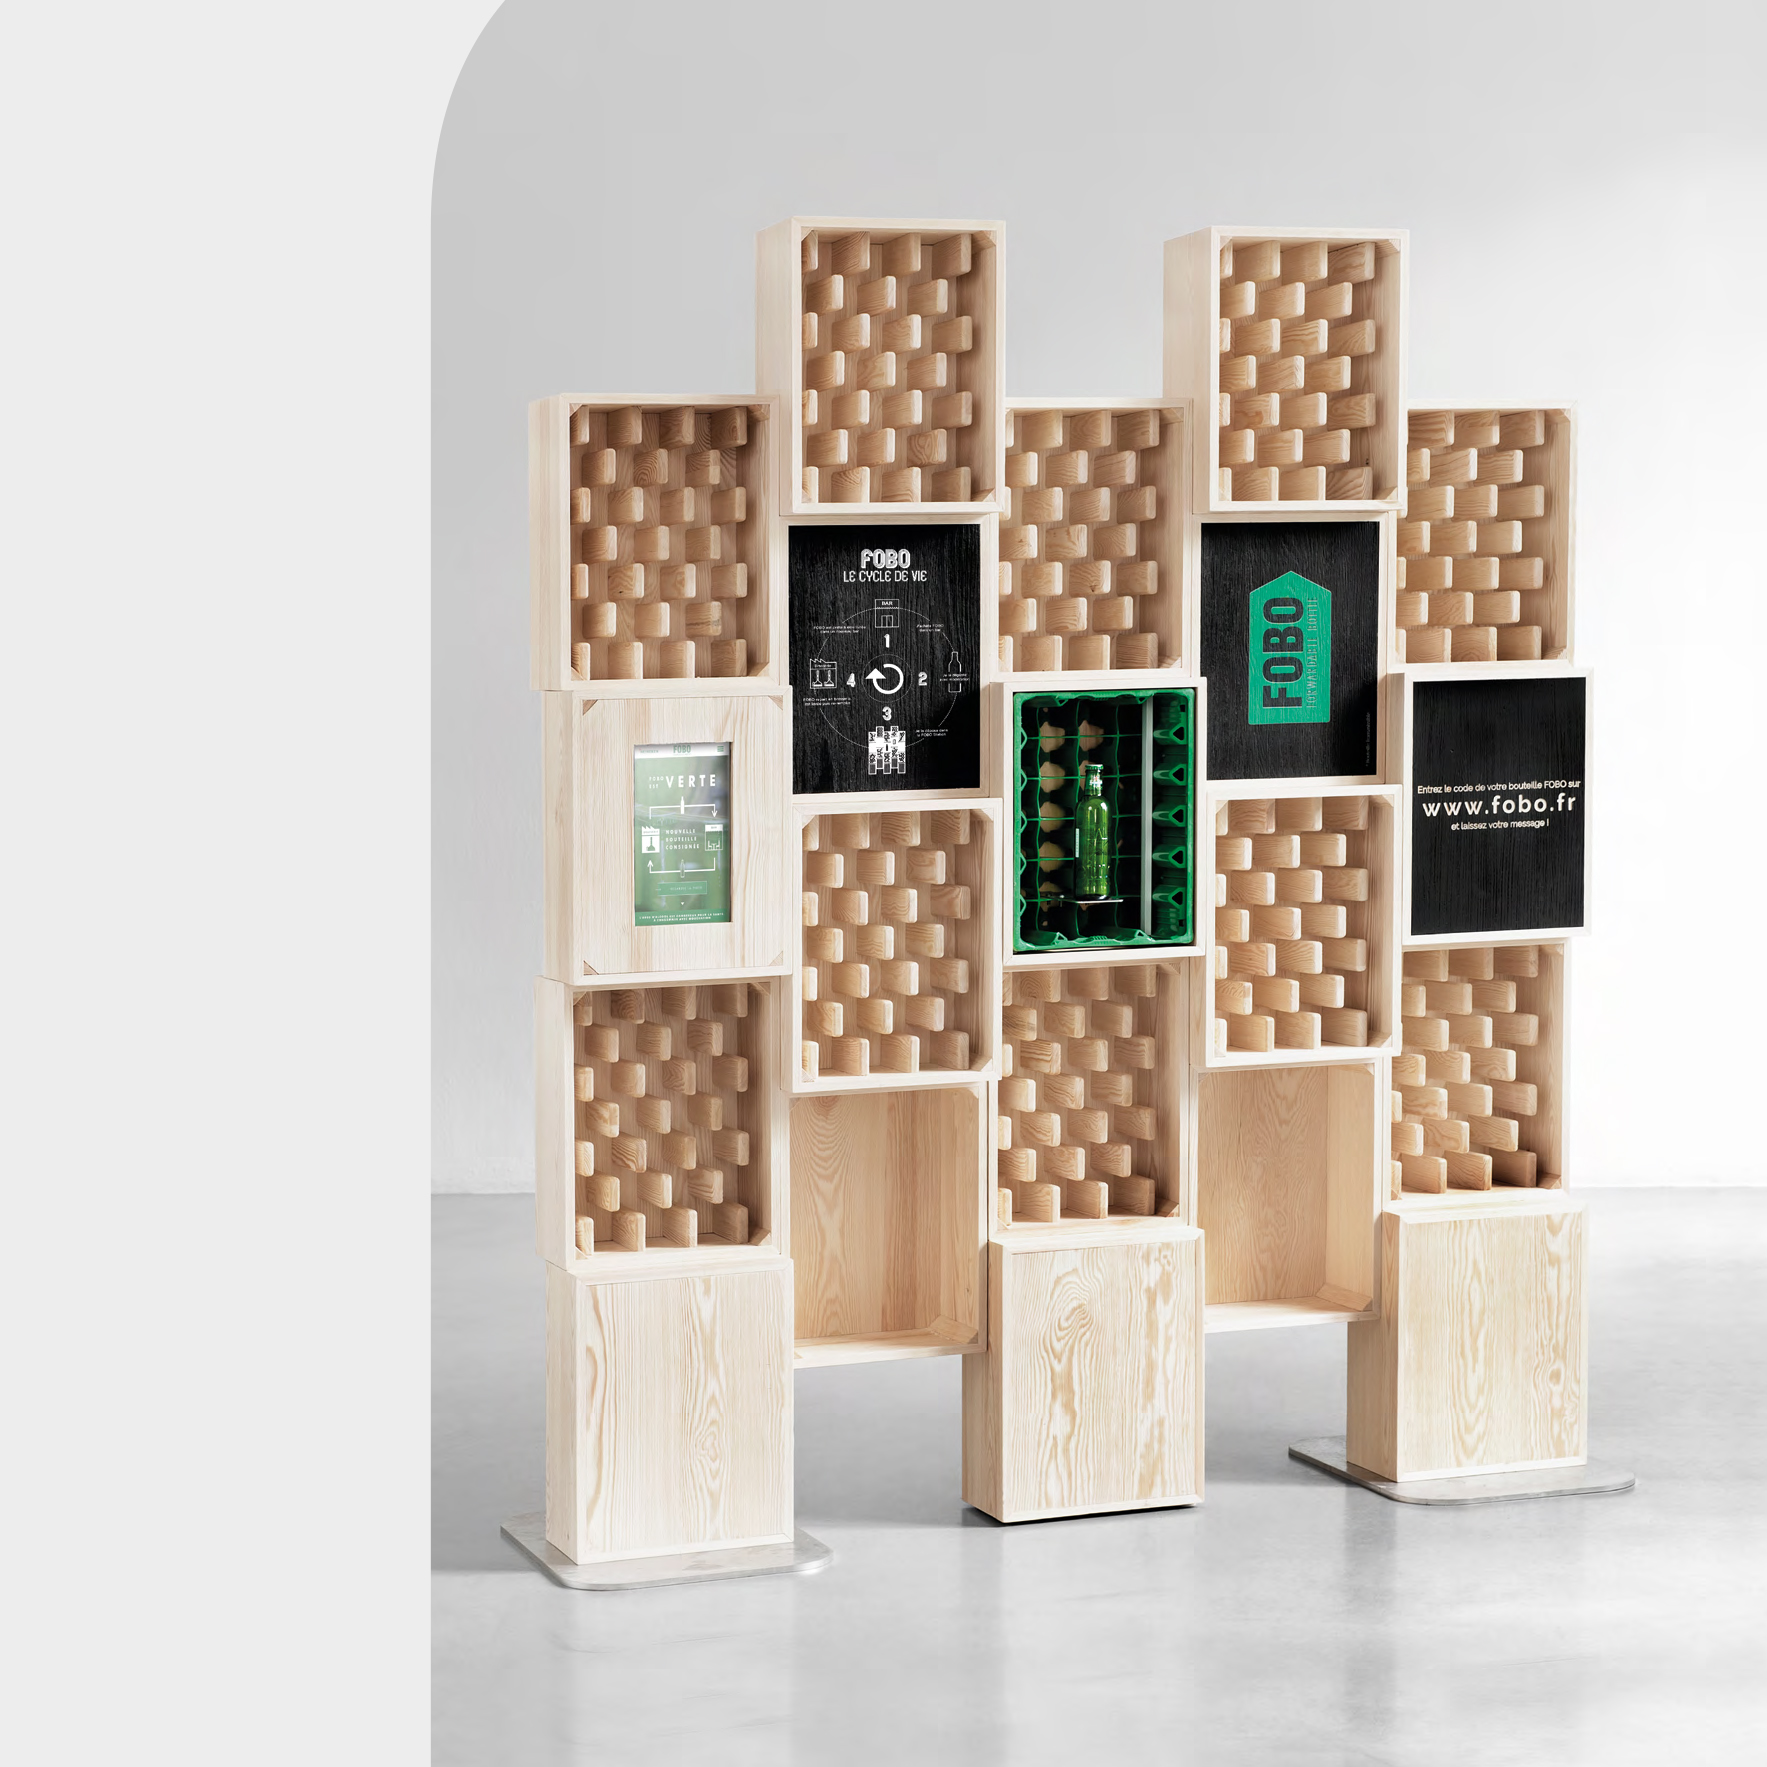 heineken-fobo-station-design-normal-studio